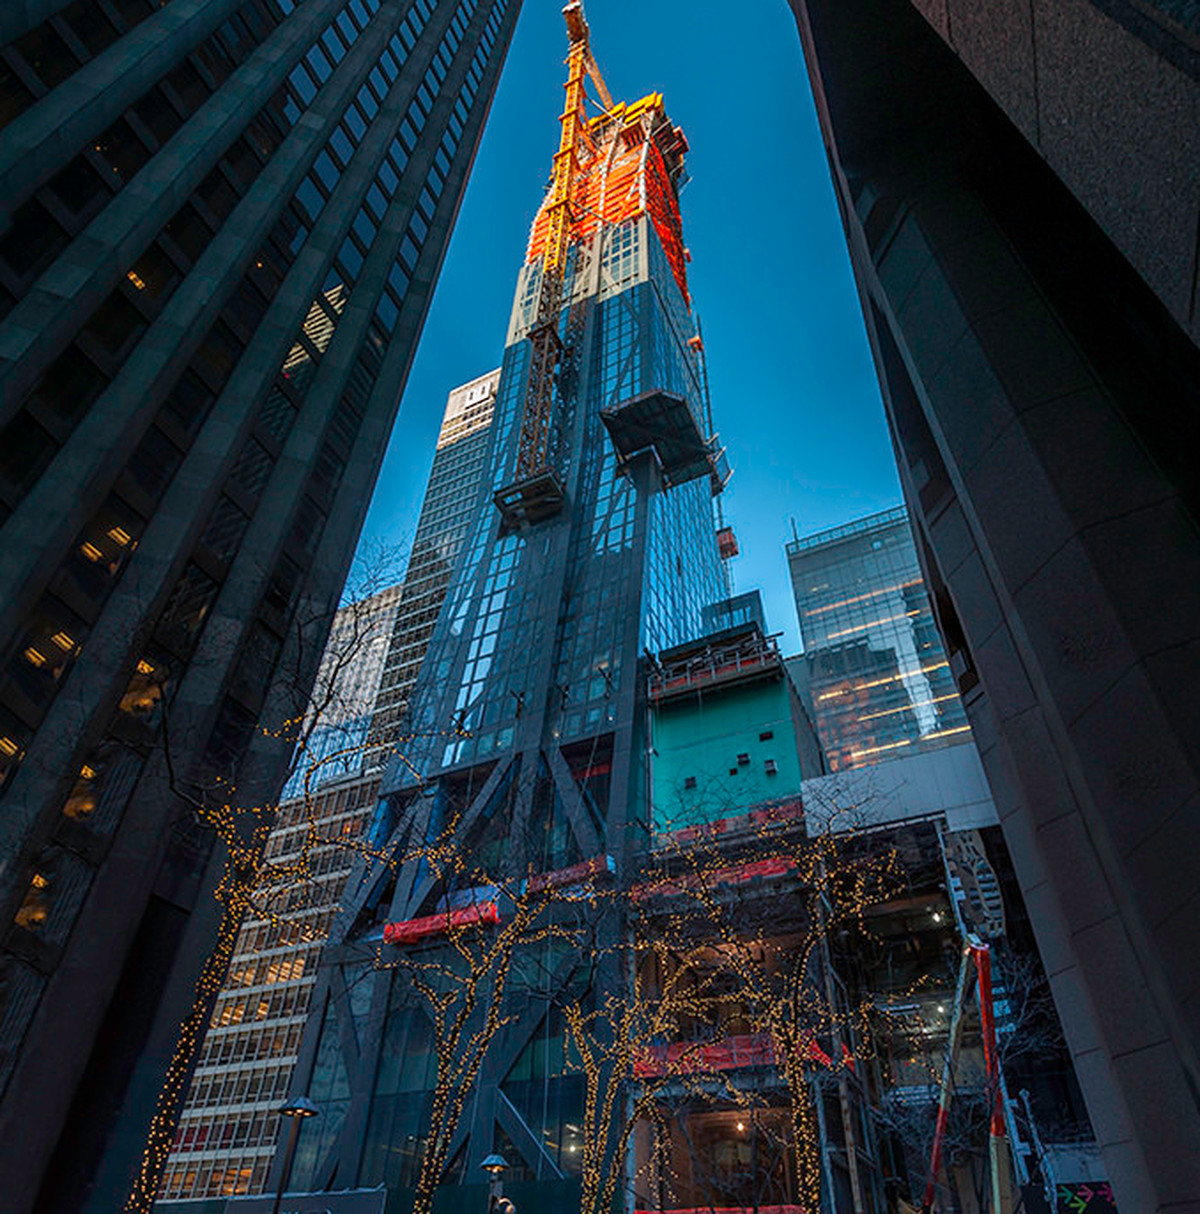 Tower 53 Condos For Sale And Condos For Rent In Manhattan: Jean Nouvel's MoMA Tower Approaches Its 1,050-foot